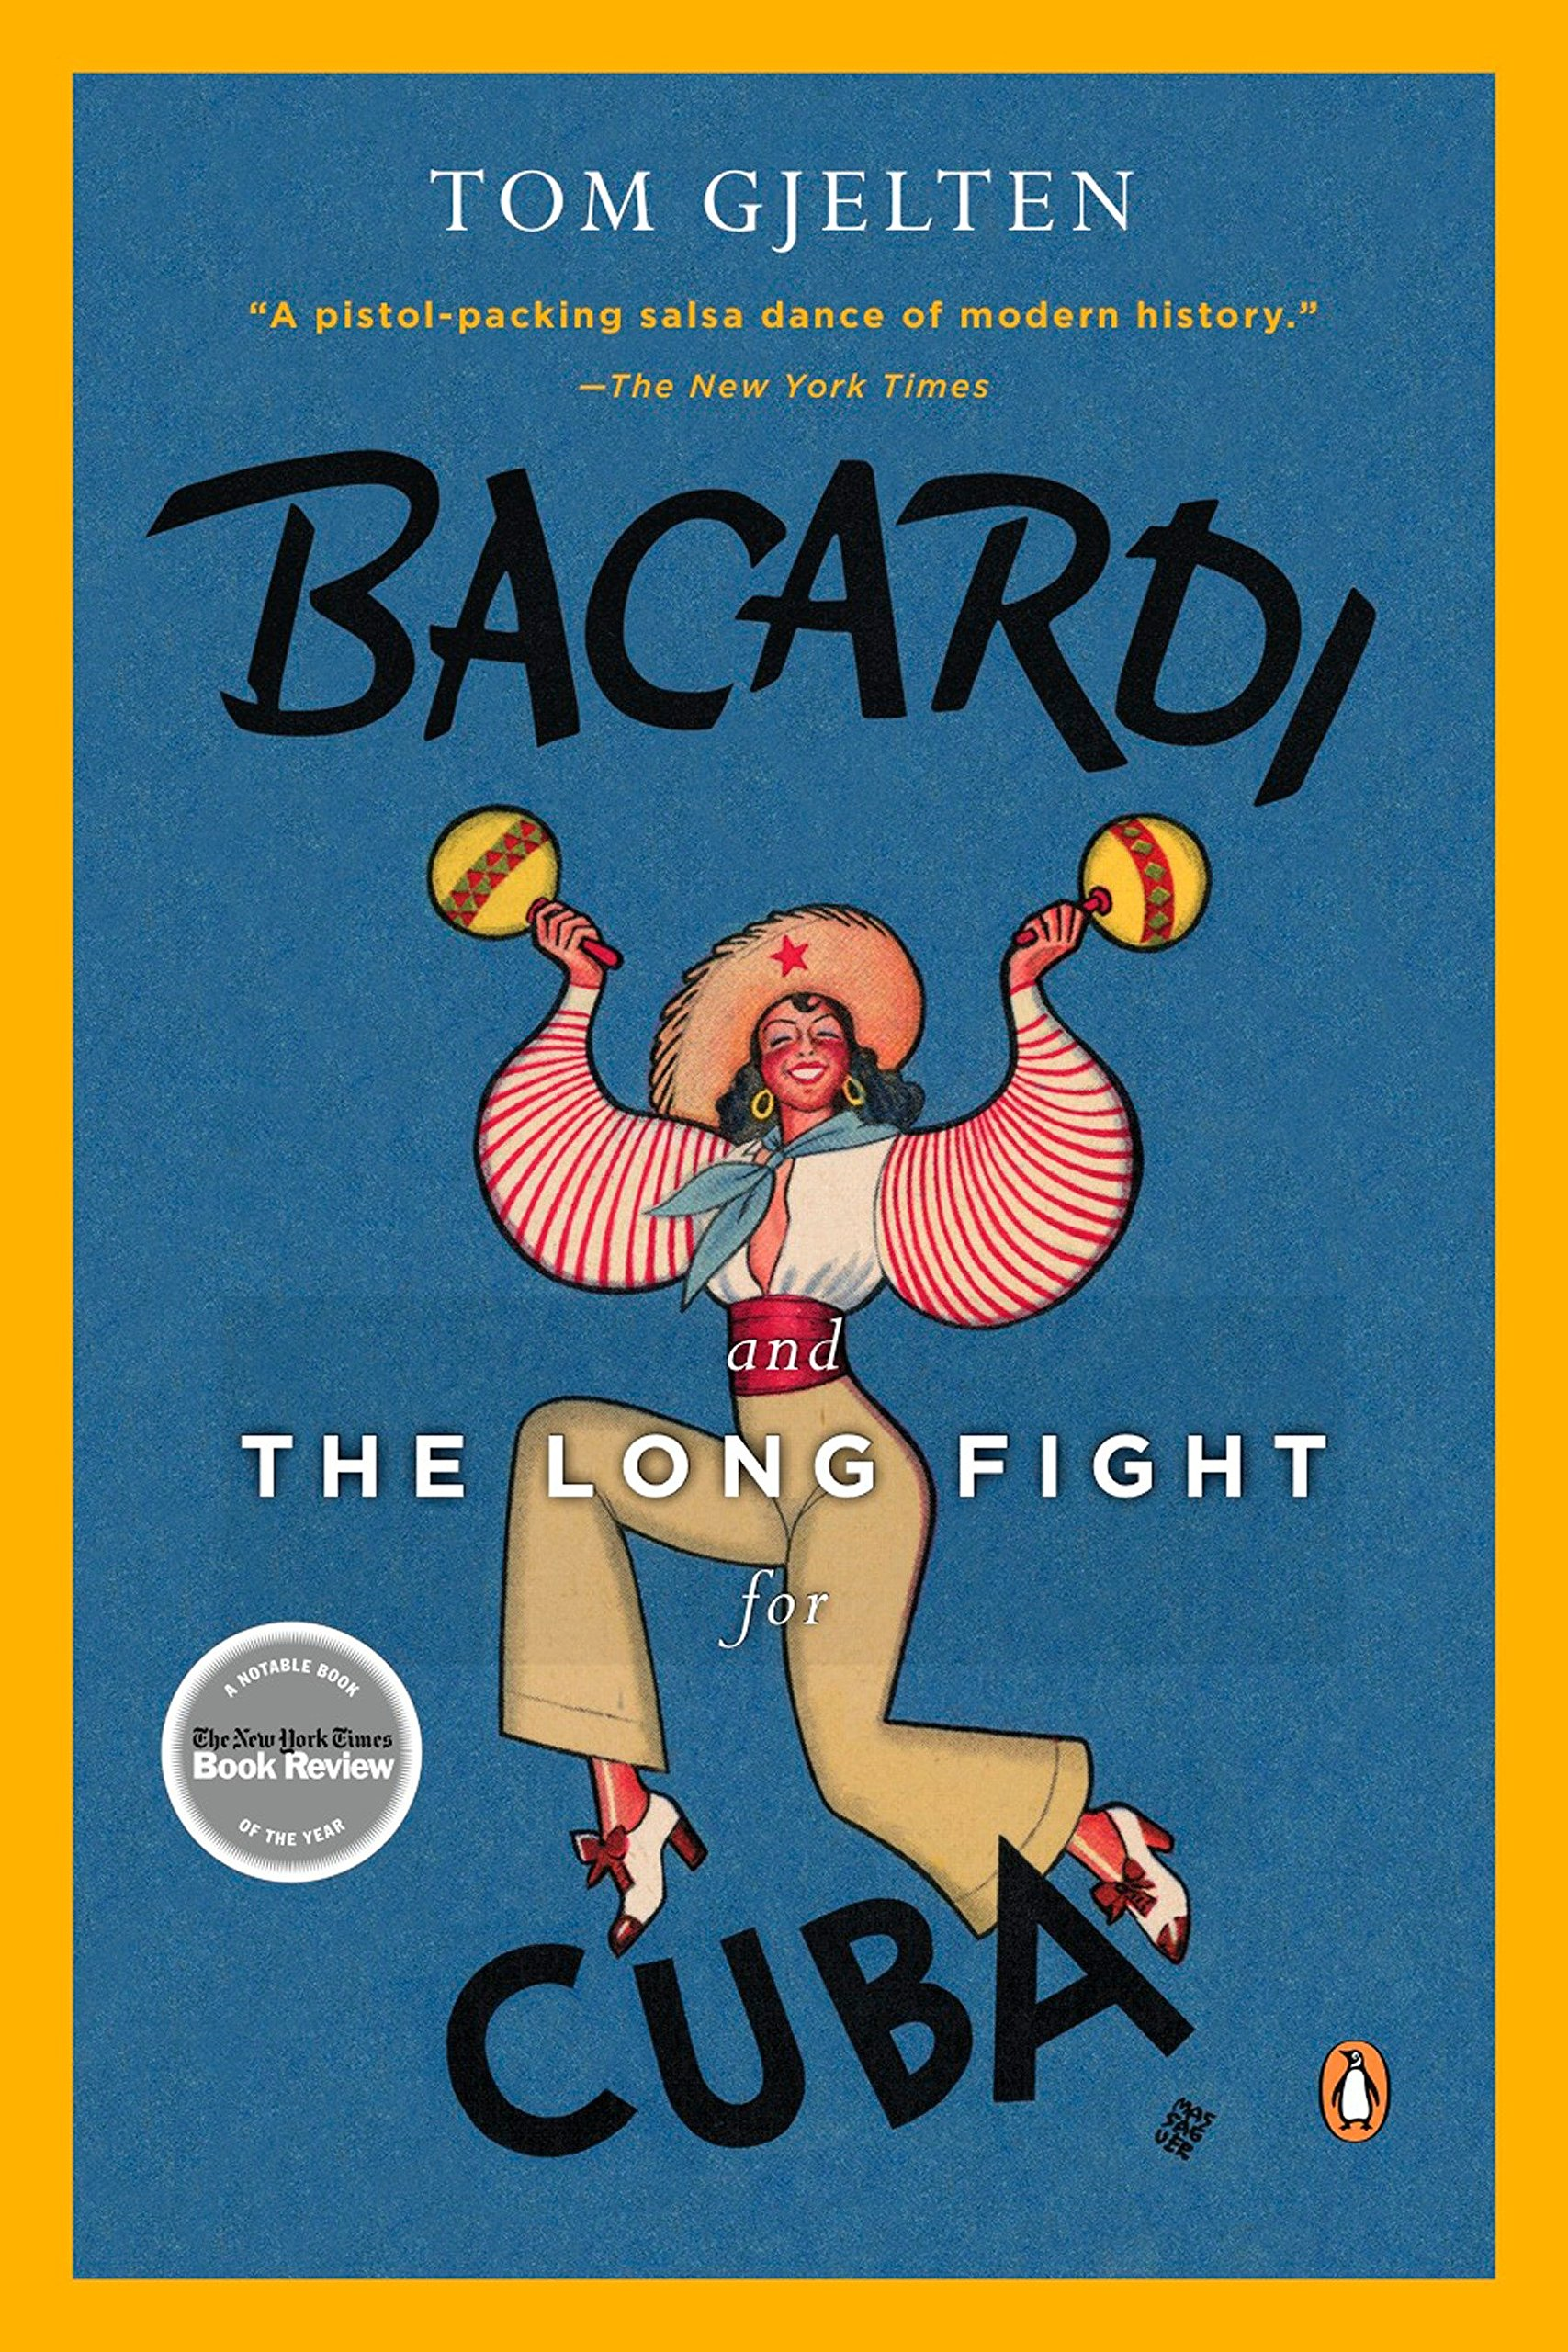 Bacardi And The Long Fight For Cuba: The Biography of a Cause ...